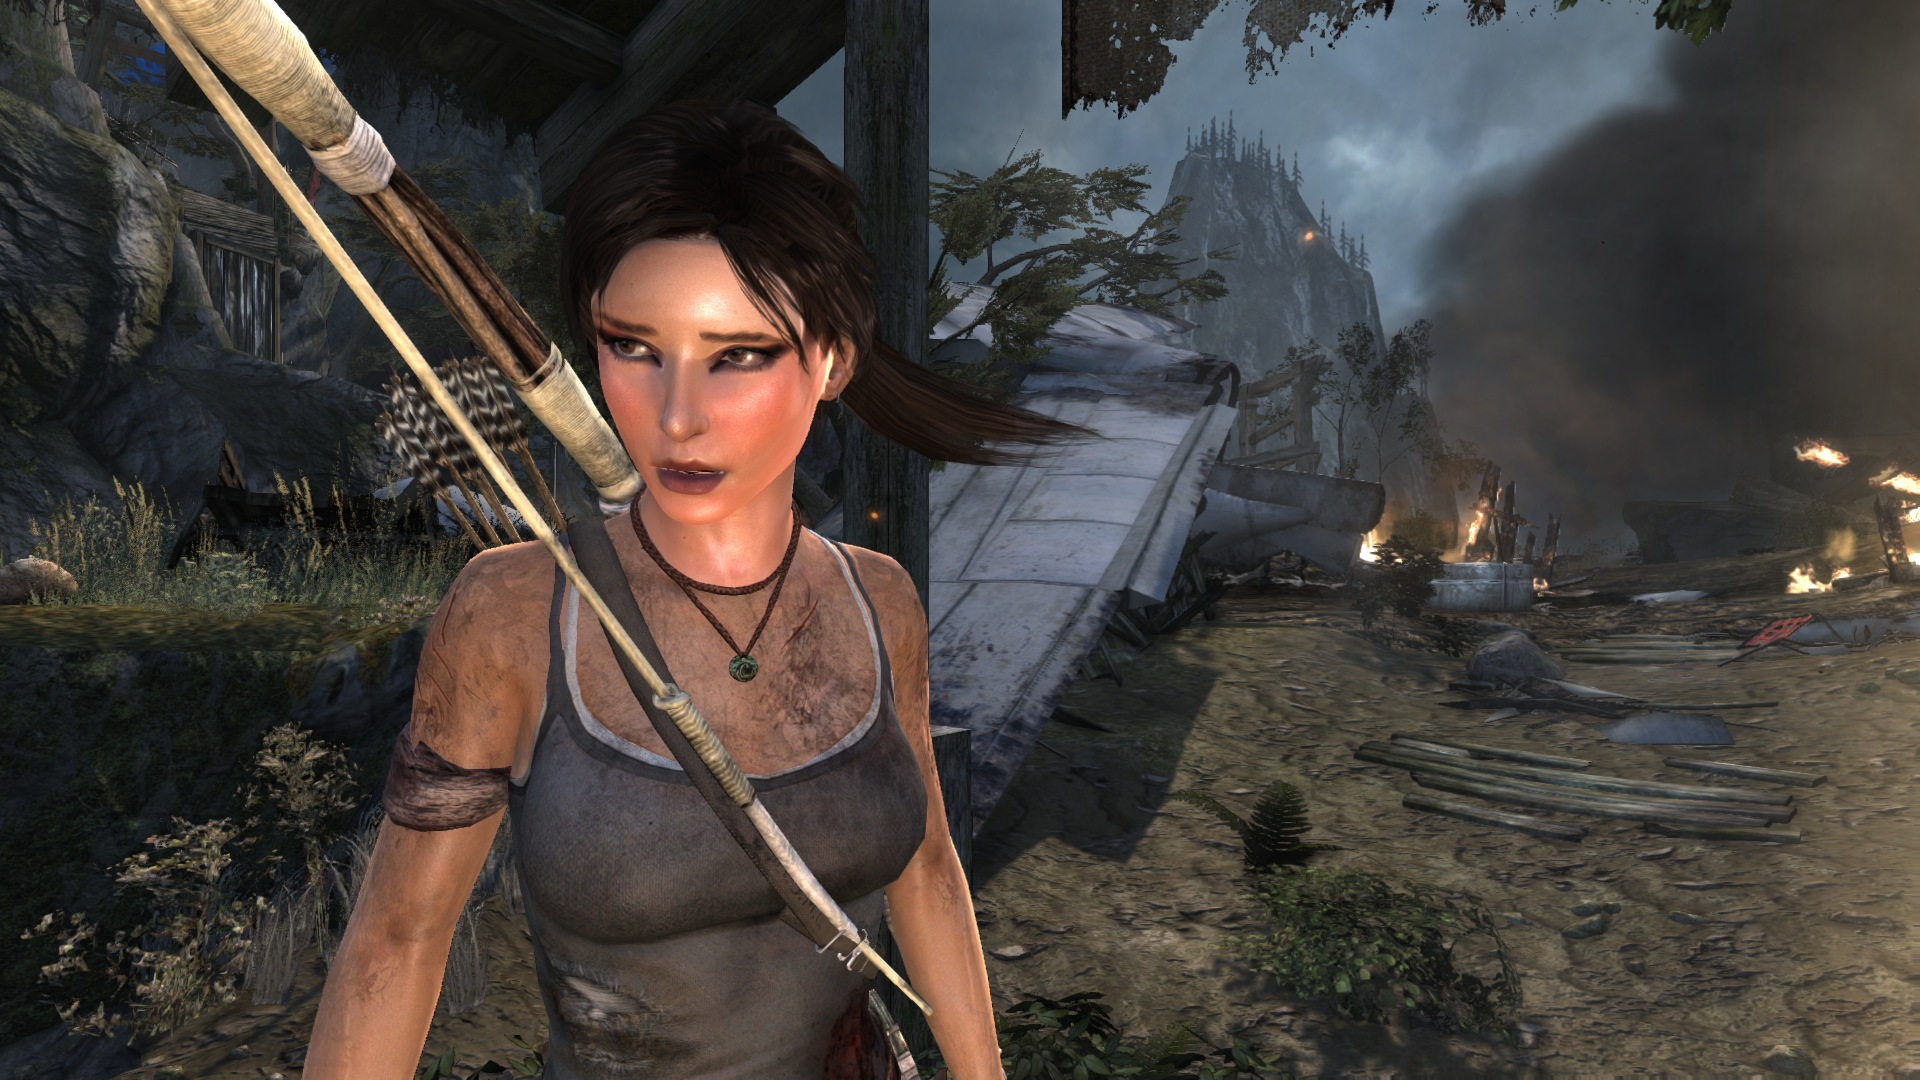 Tomb raider 2013 mods adult toons